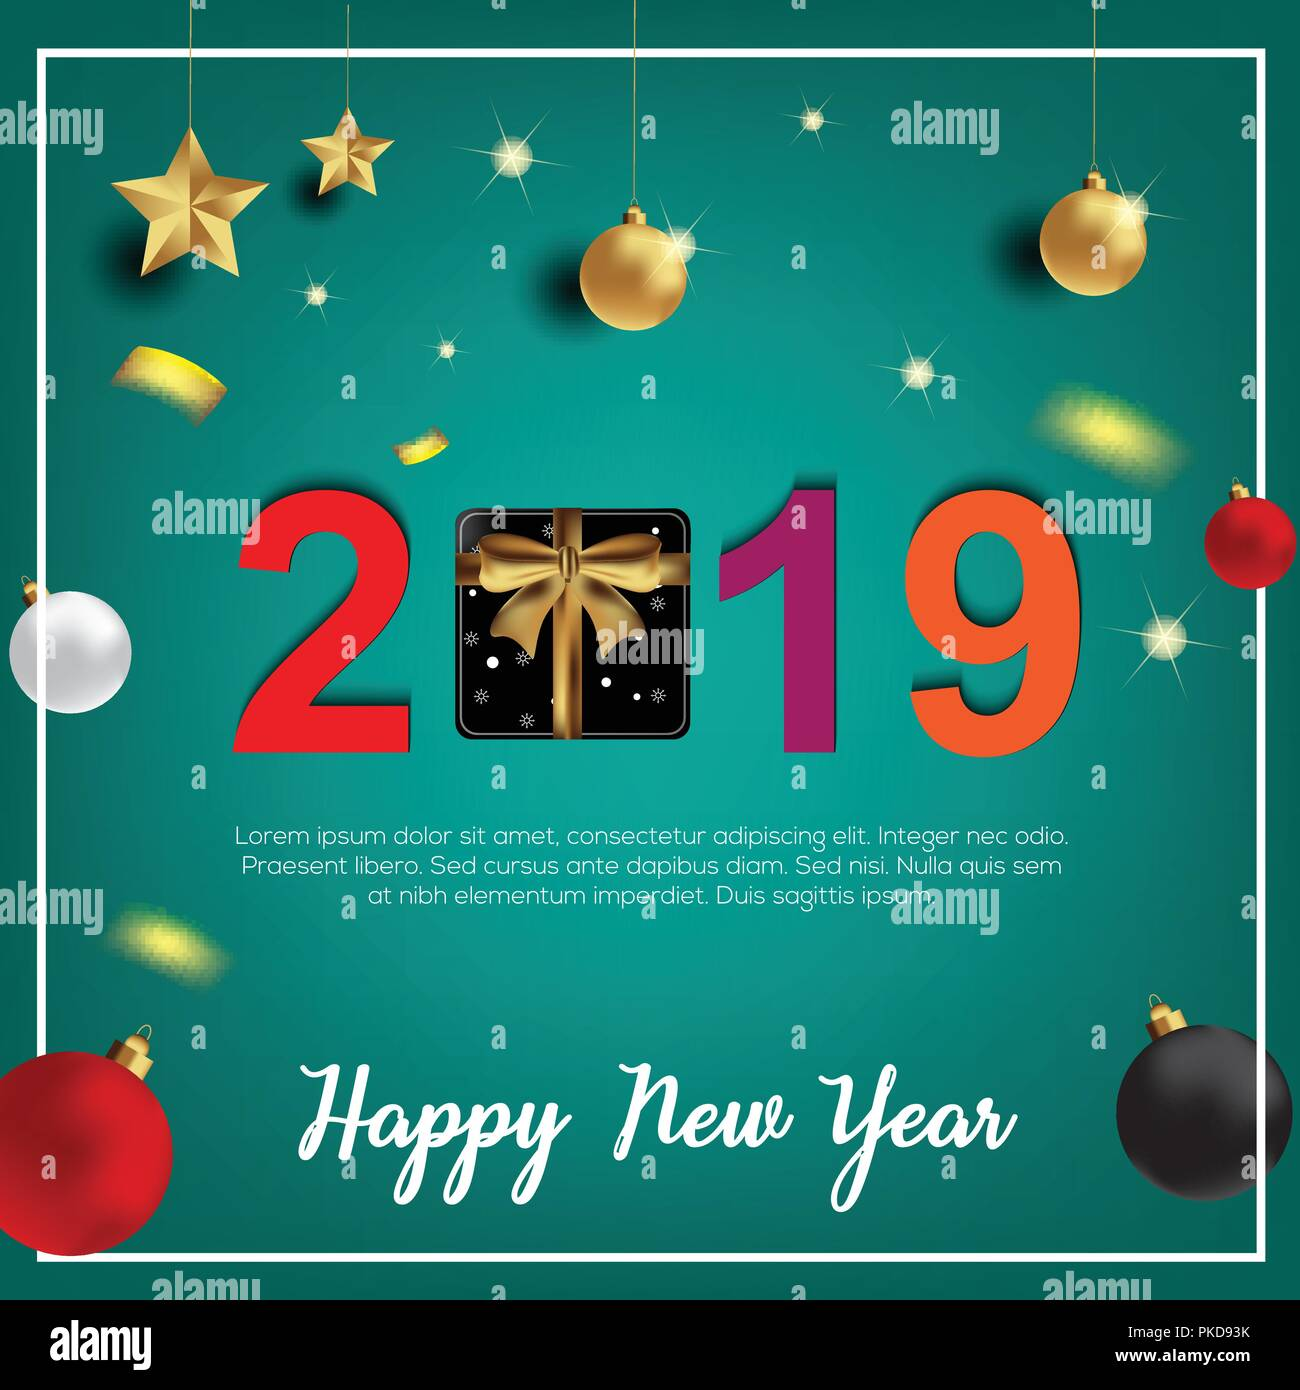 2019 hand written lettering with golden christmas stars on a black2019 hand written lettering with golden christmas stars on a black background happy new year card design vector illustration eps 10 file